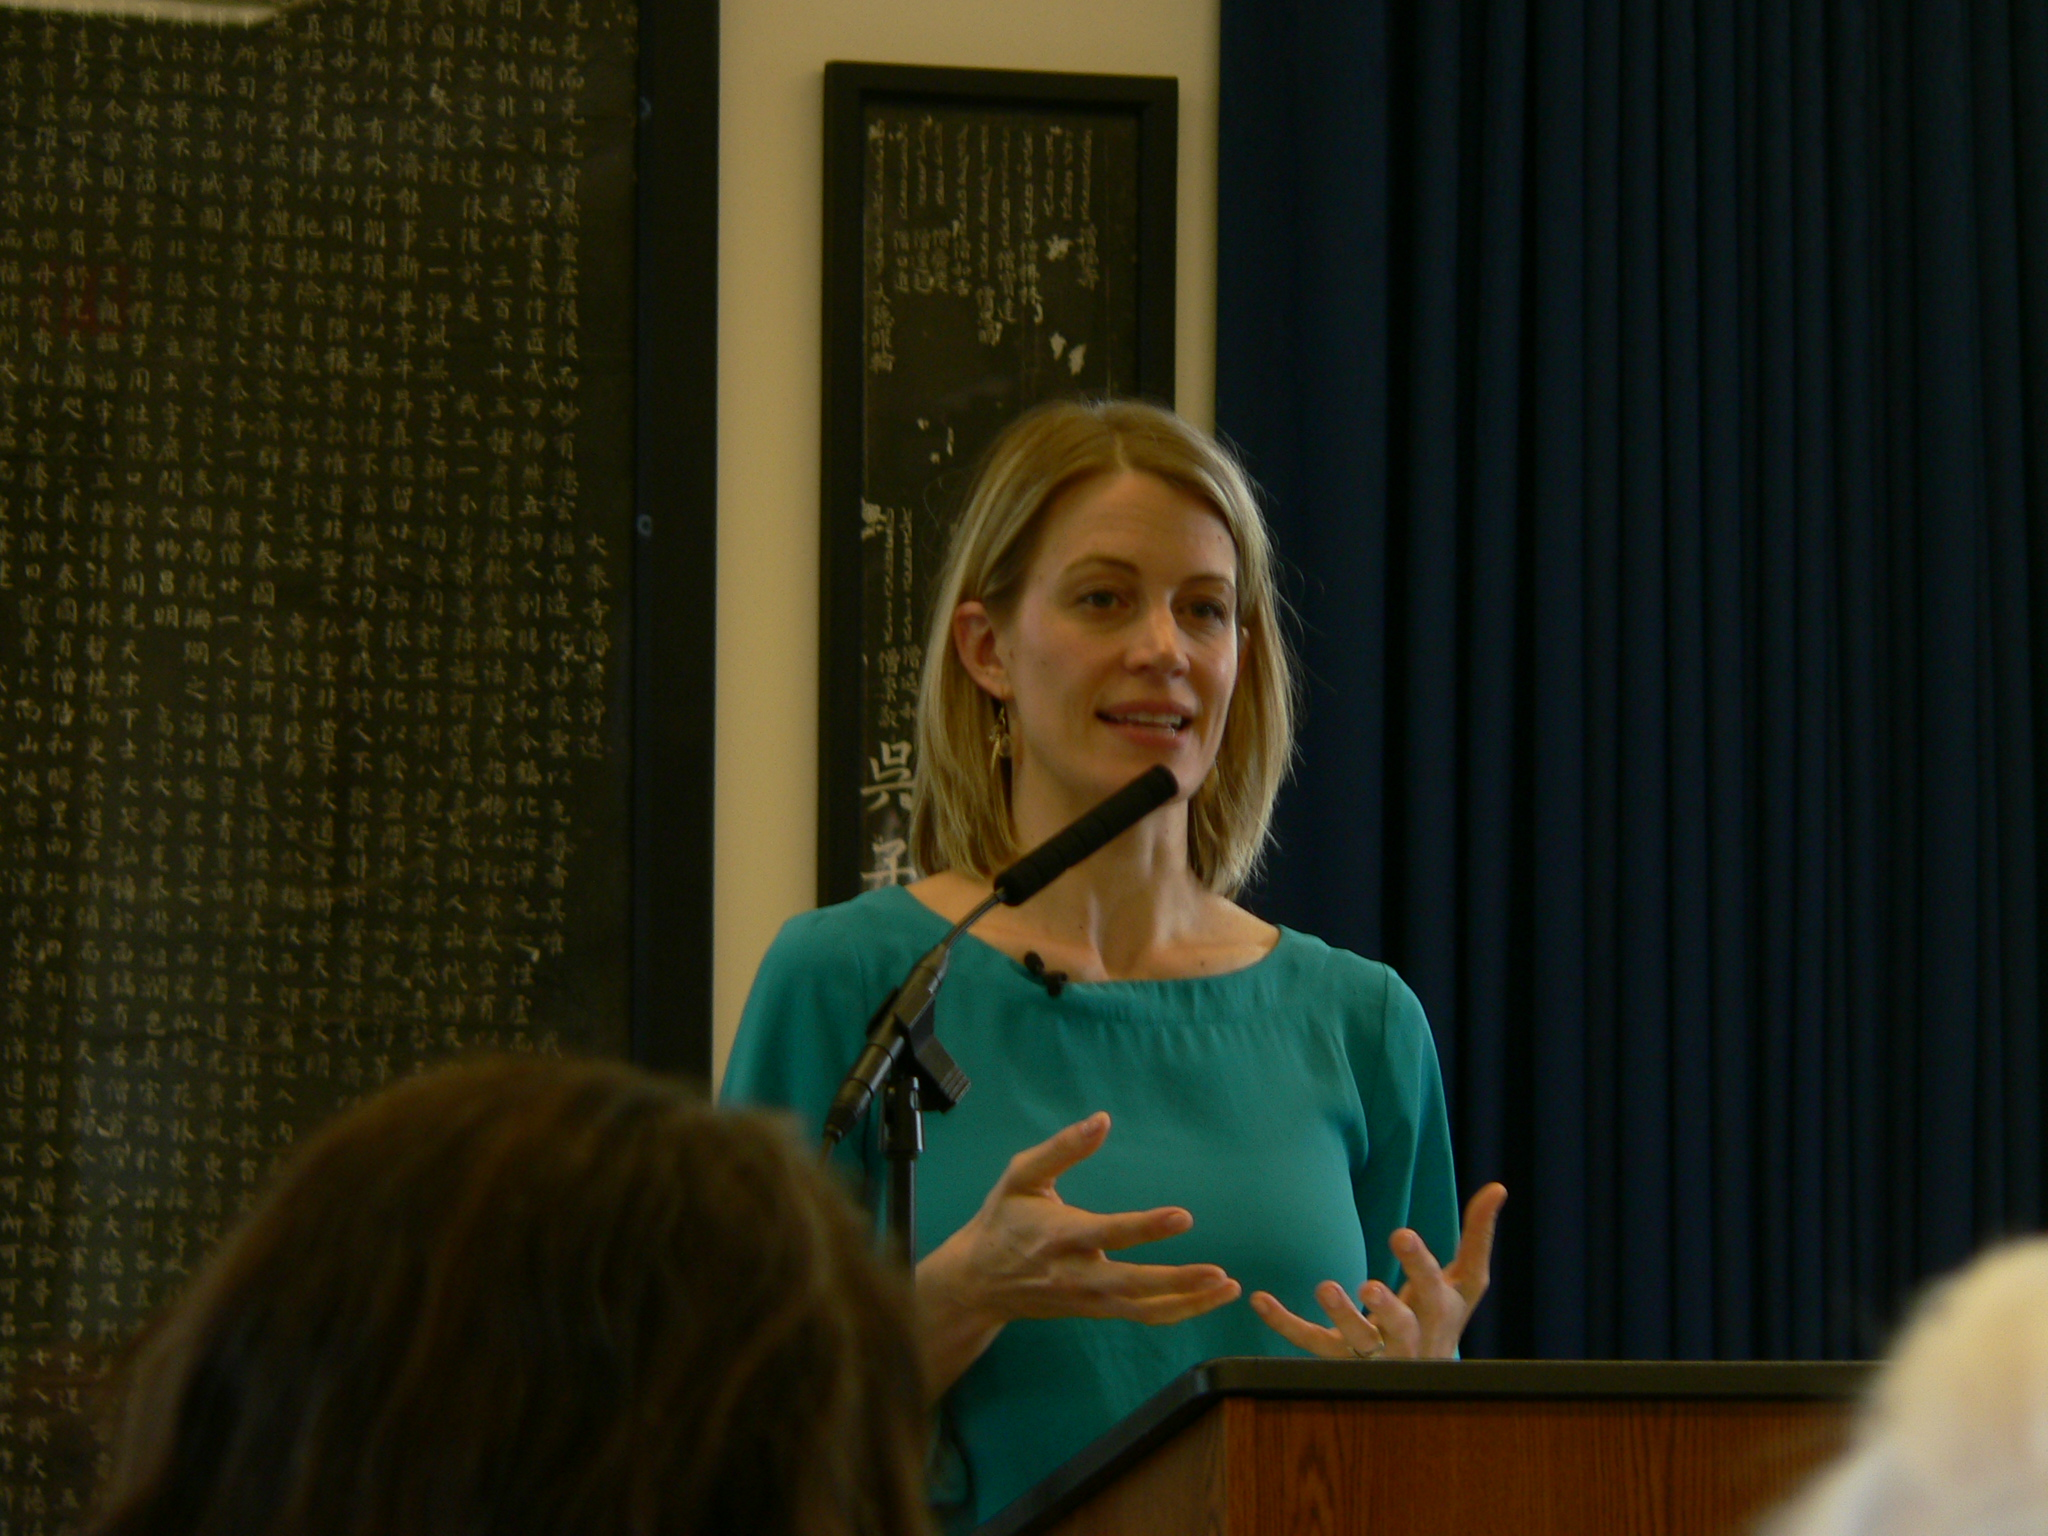 Christiana Peppard in lecture at Maryknoll in Ossining, New York, May 2014